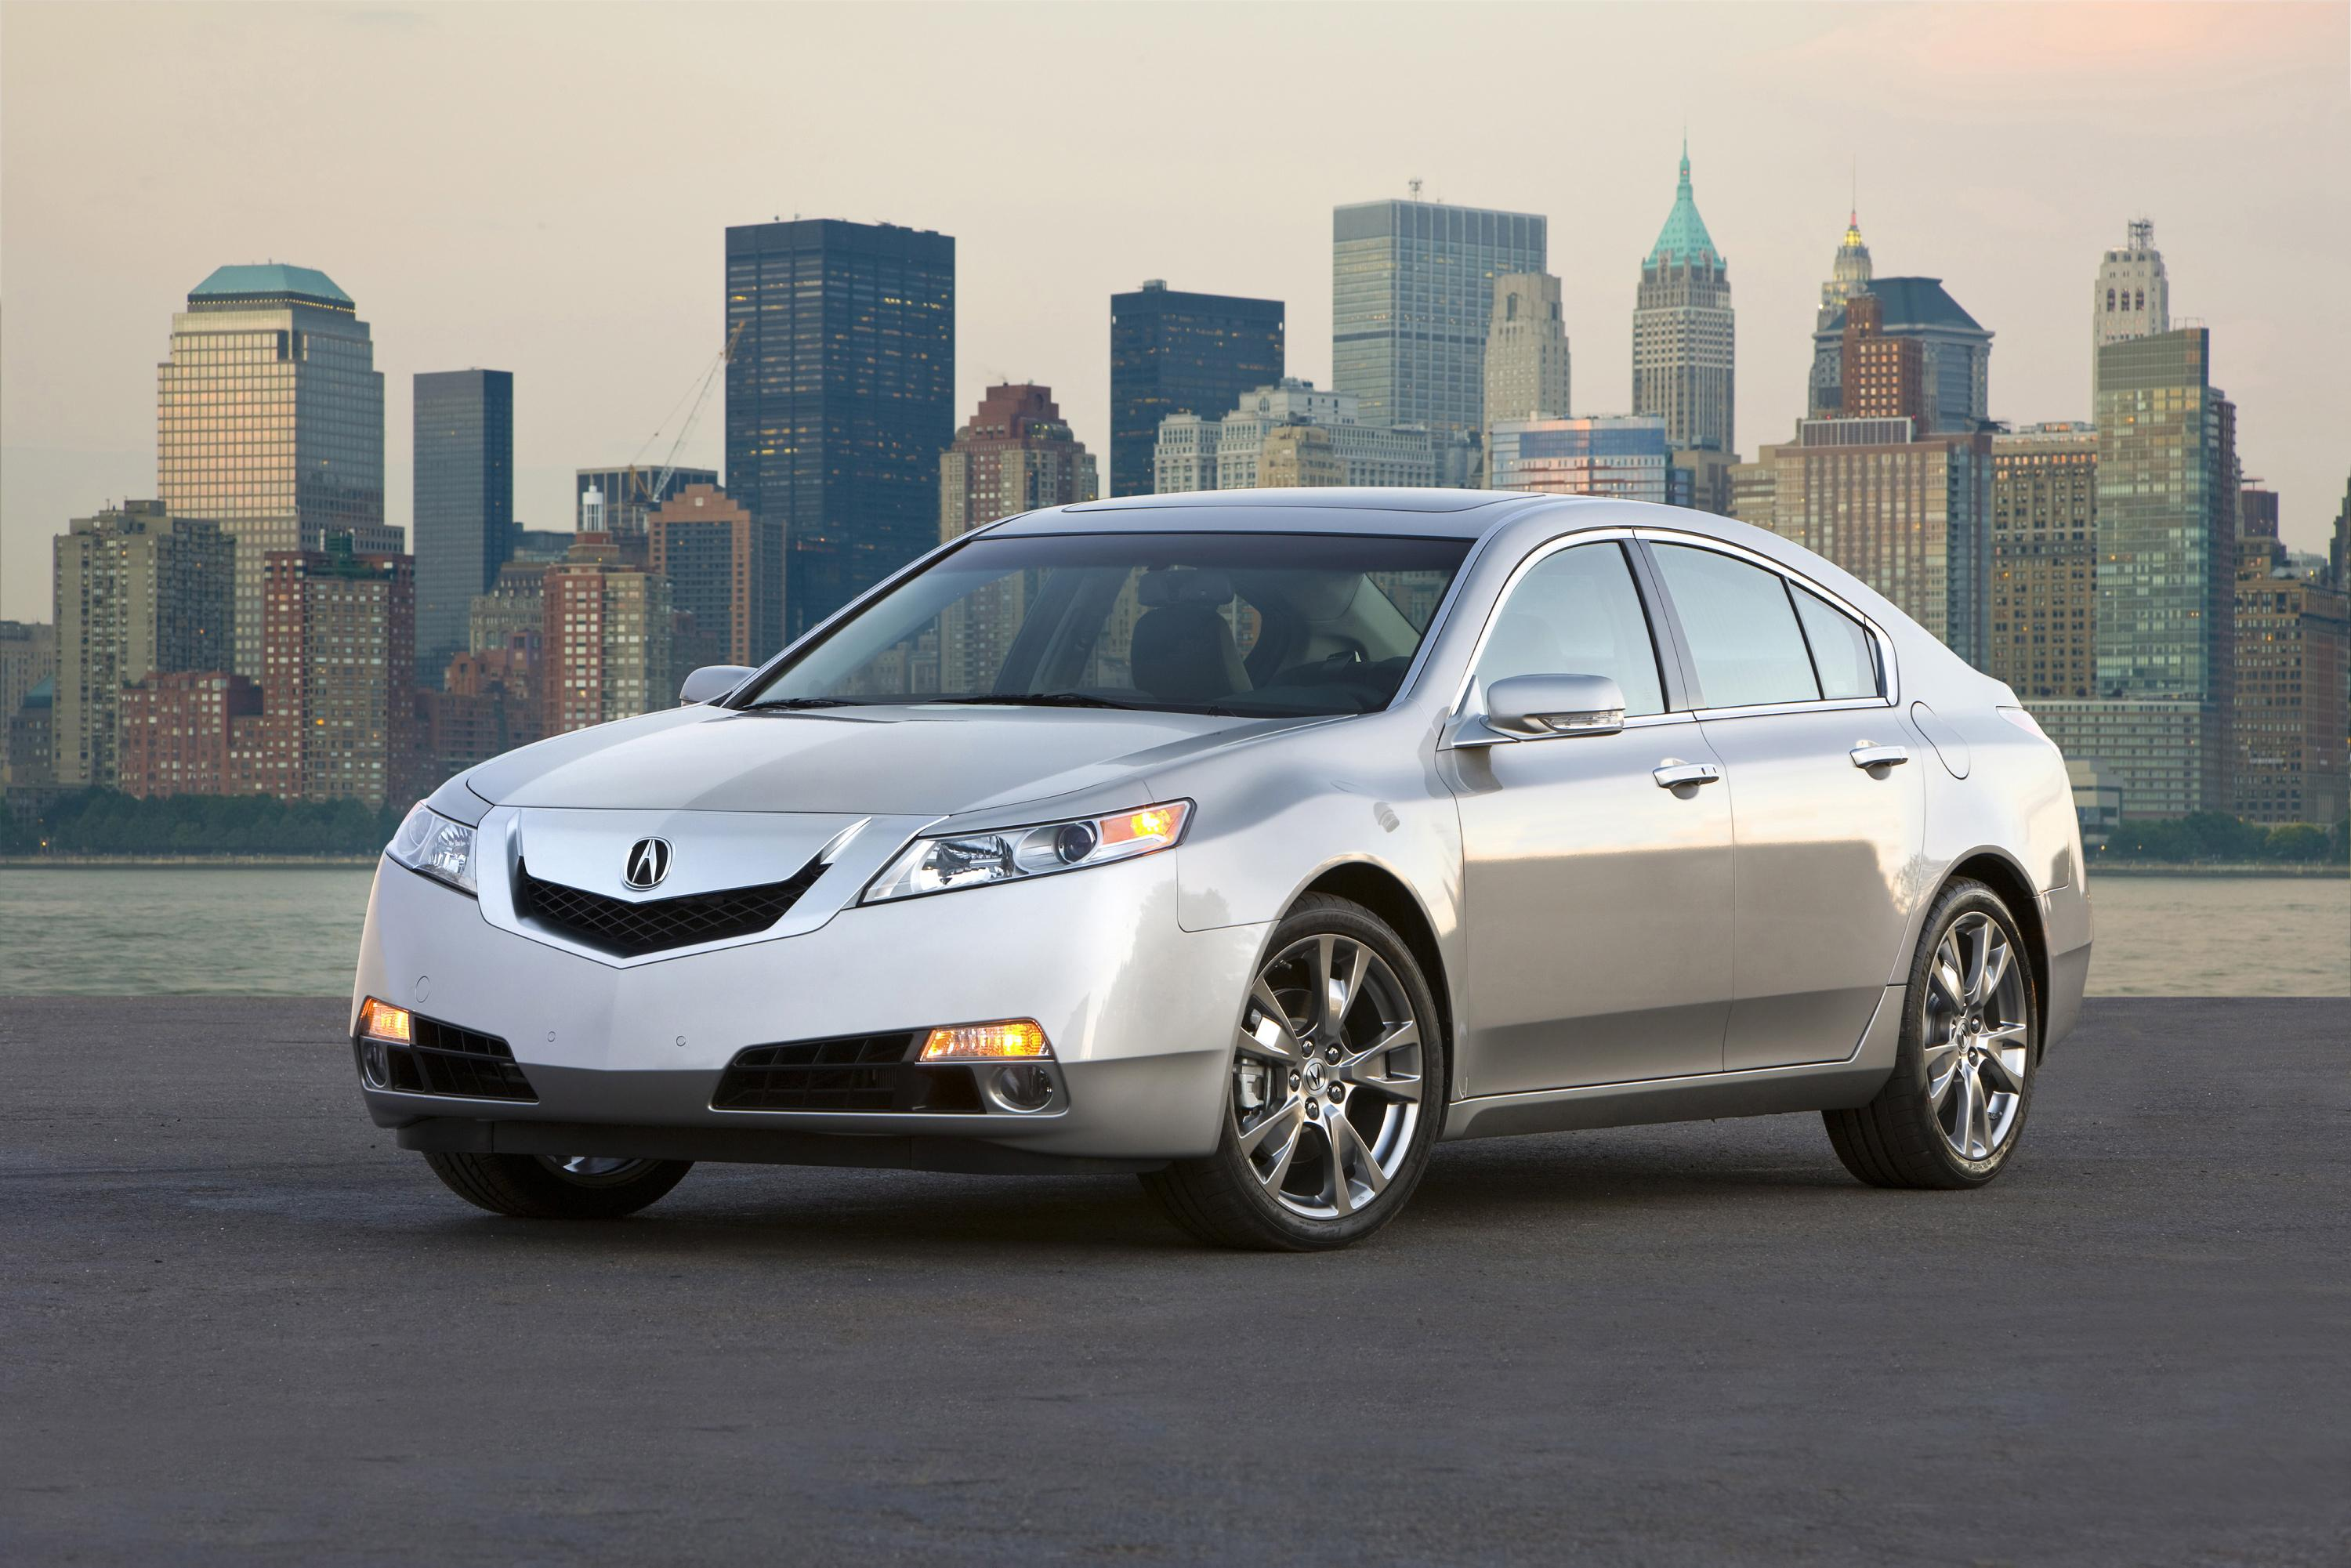 2009 acura tl sh awd picture 7573